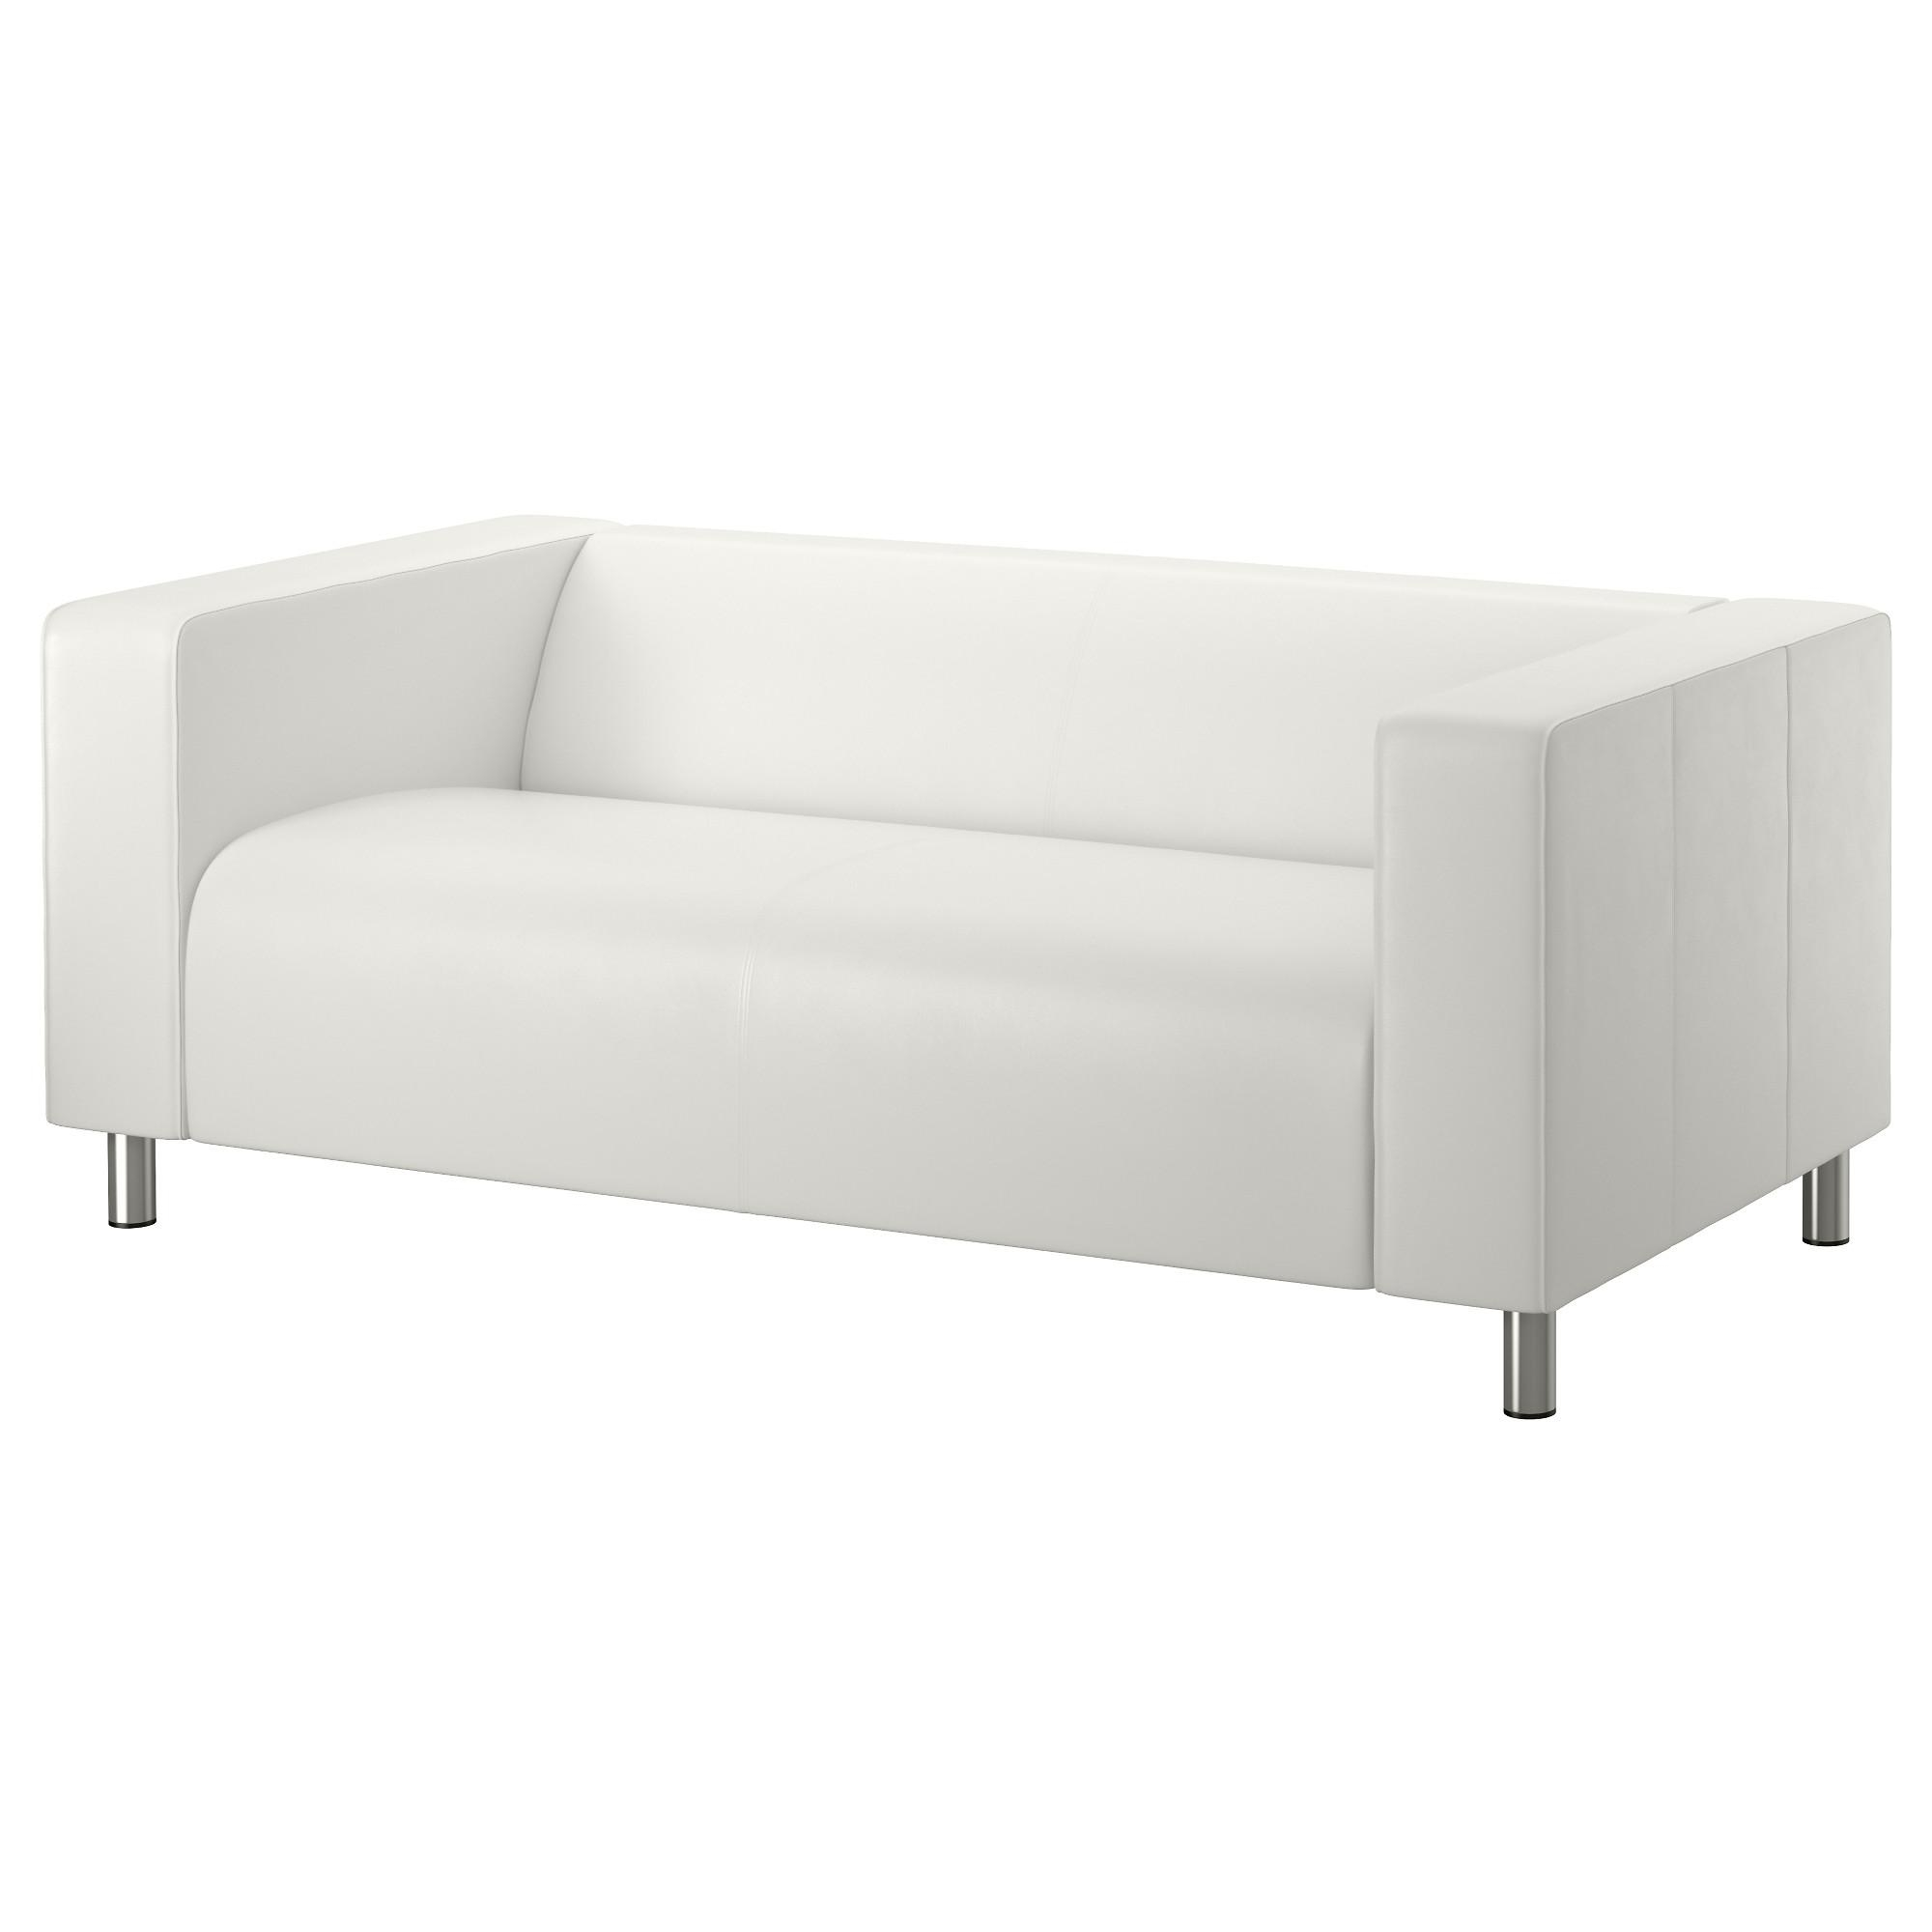 Small Sofa & 2 Seater Sofa | Ikea Within Ikea Two Seater Sofas (View 7 of 20)